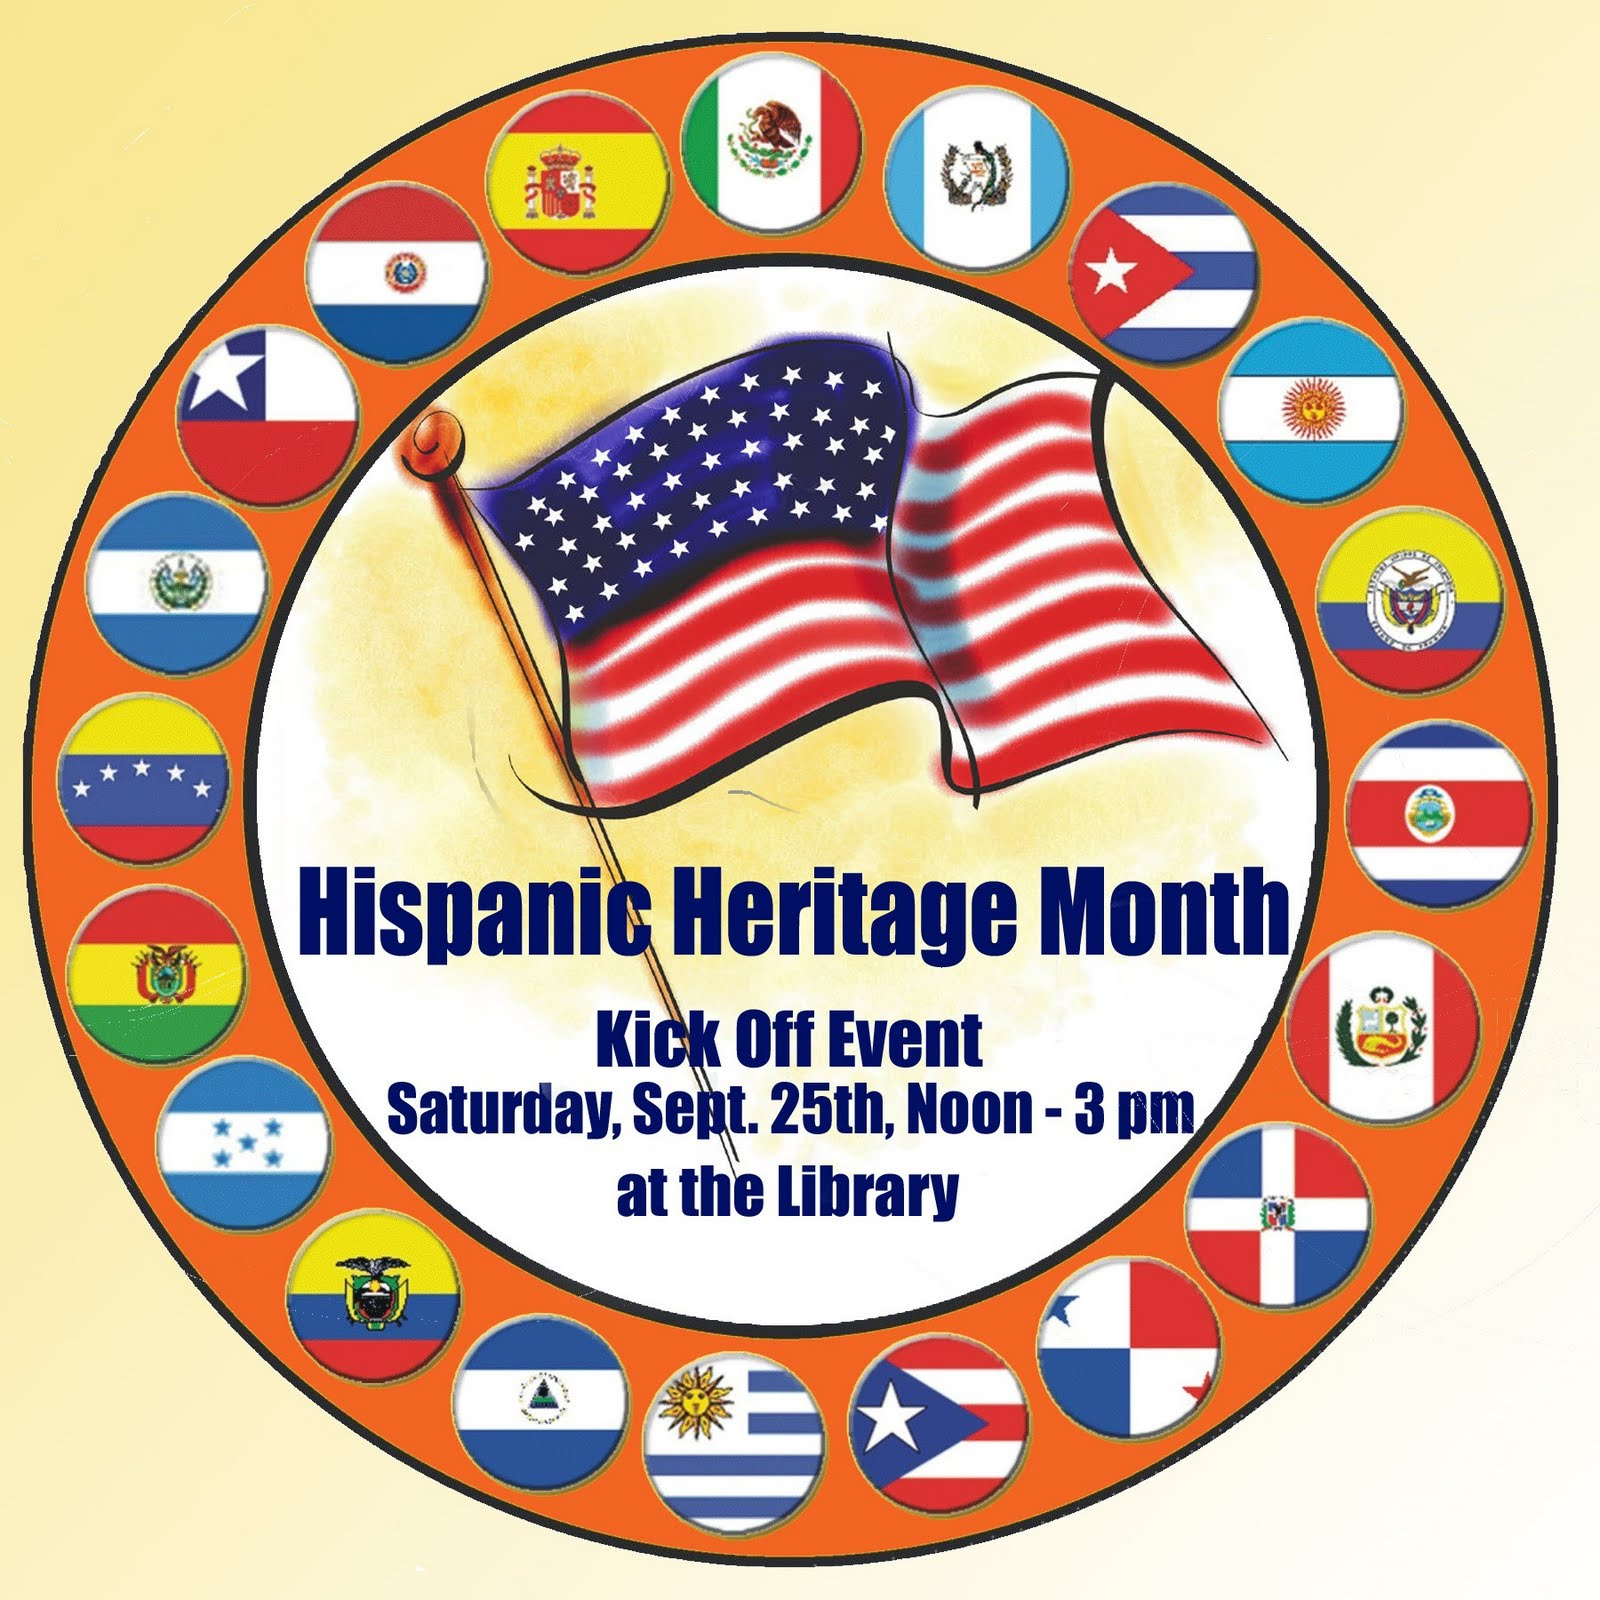 Latin clipart hispanic culture Celebration Hispanic Heritage Hispanic Event